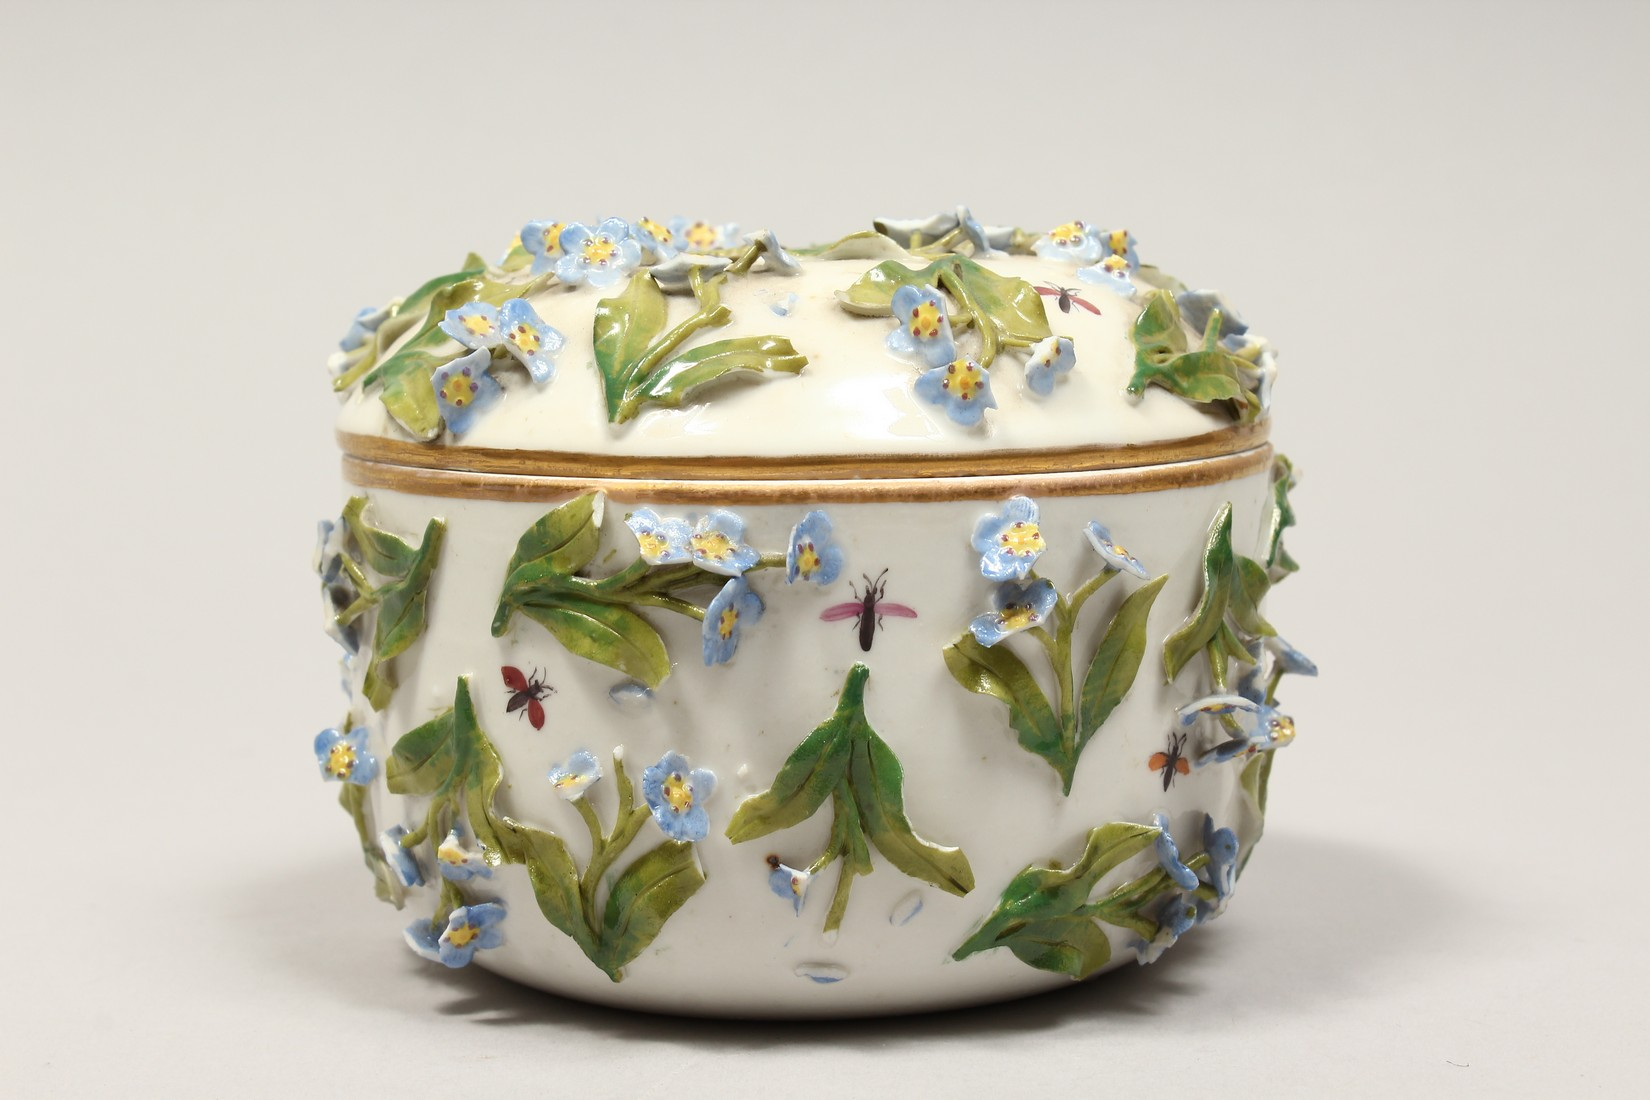 A DRESDON CIRCULAR BOWL AND COVER painted with moths and encrusted with flowers. 4.5ins diameter. - Image 2 of 8